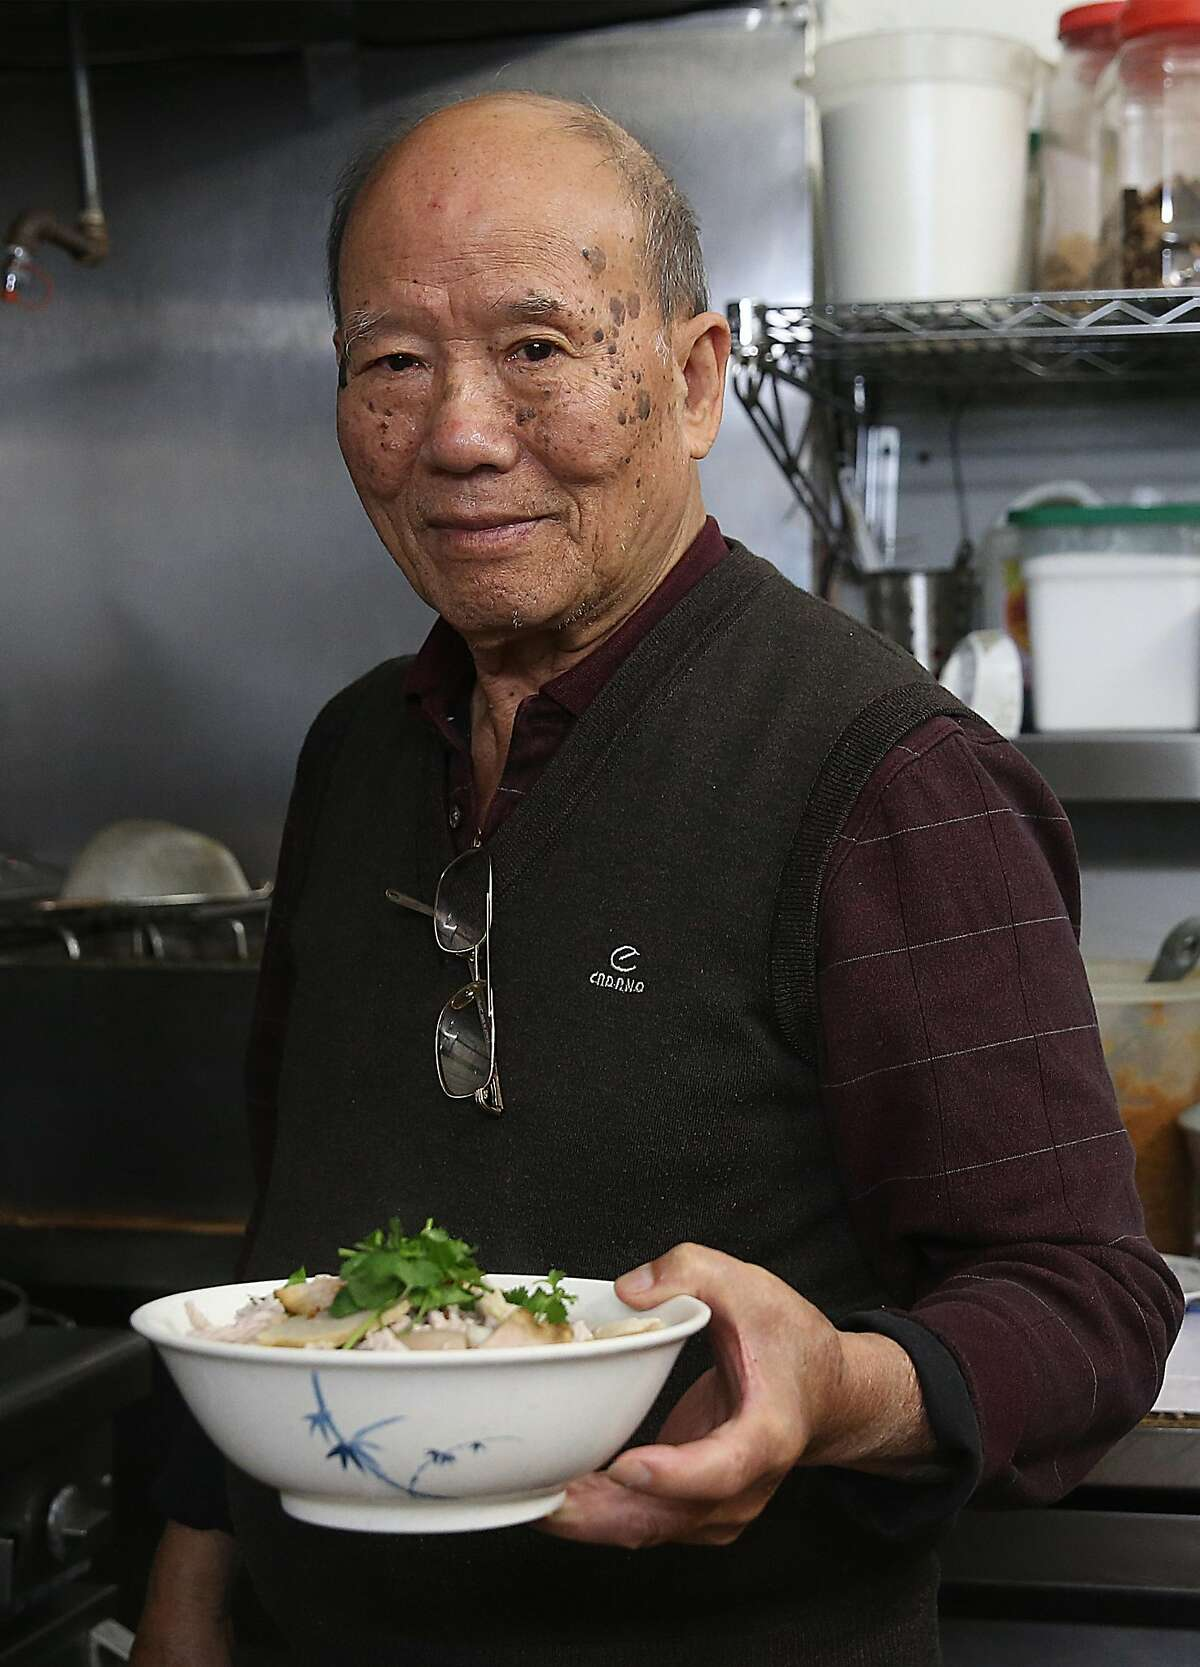 Tuan Hua, 80 years old, has been making noodle dishes at Hai Ky Mi Gia, a Vietnamese-Chinese restaurant, since April 1987 on Friday, April 27, 2018, in San Francisco, Calif.